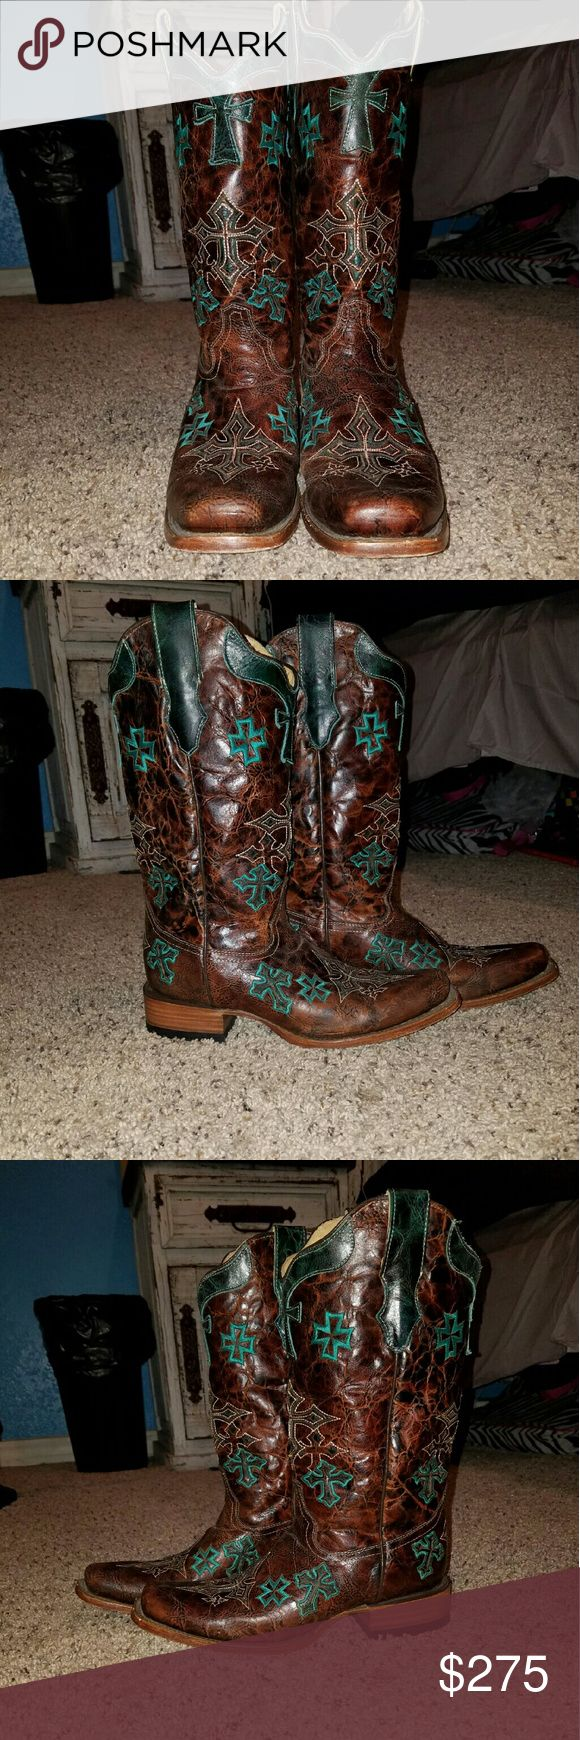 Corral Boots These boots are perfect for my country girls out there! They are perfect for going dancing, rodeos, or just wearing them to wear them! Shoes